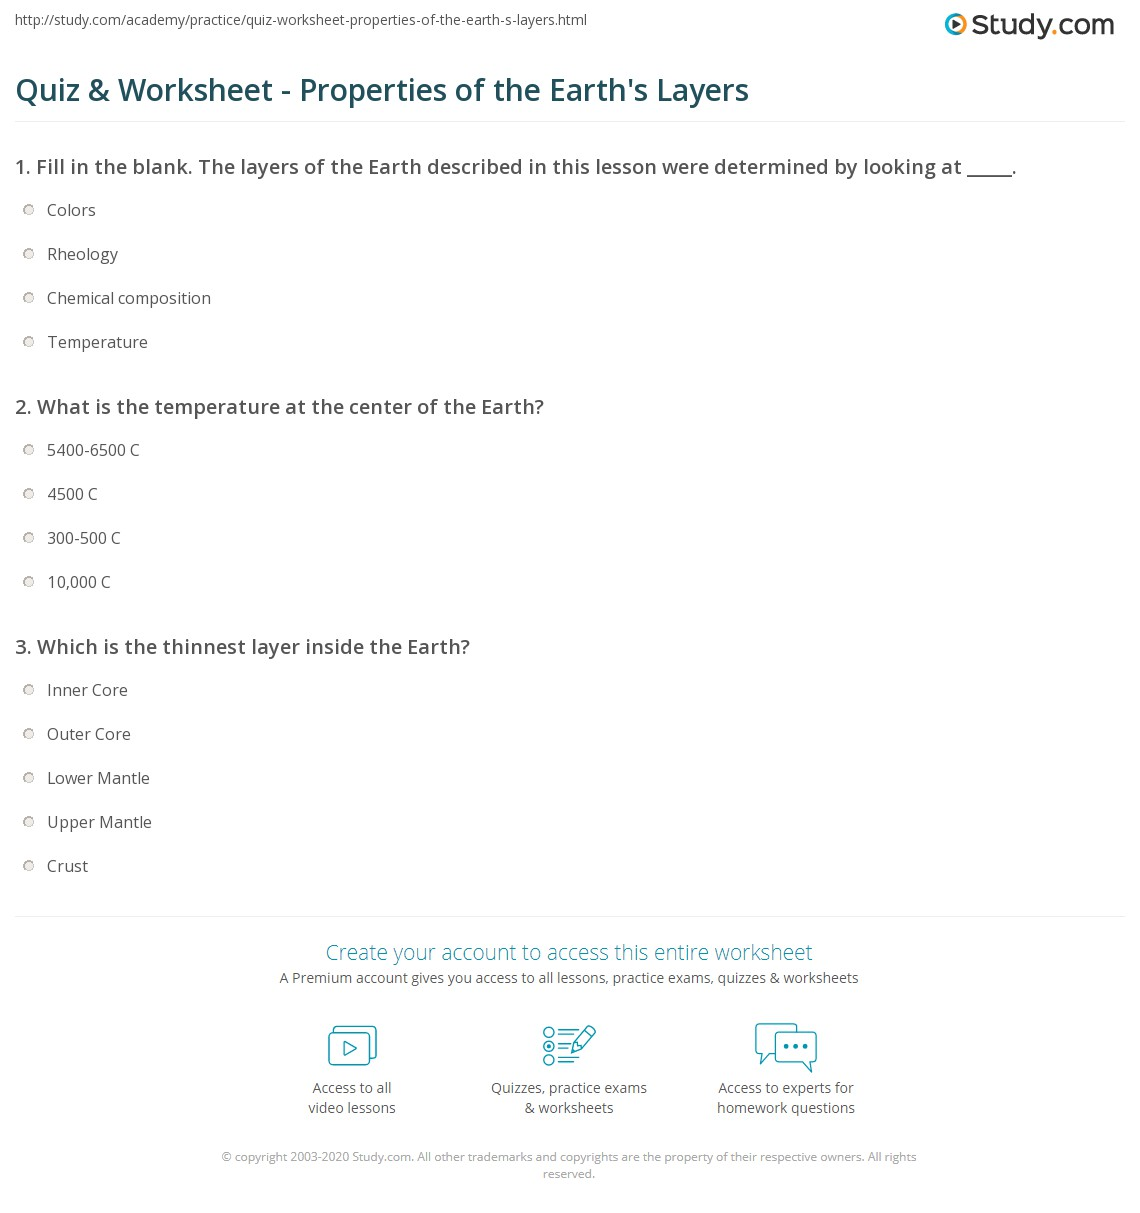 Free Worksheet Layers Of Earth Worksheet quiz worksheet properties of the earths layers study com print earth facts composition temperature worksheet